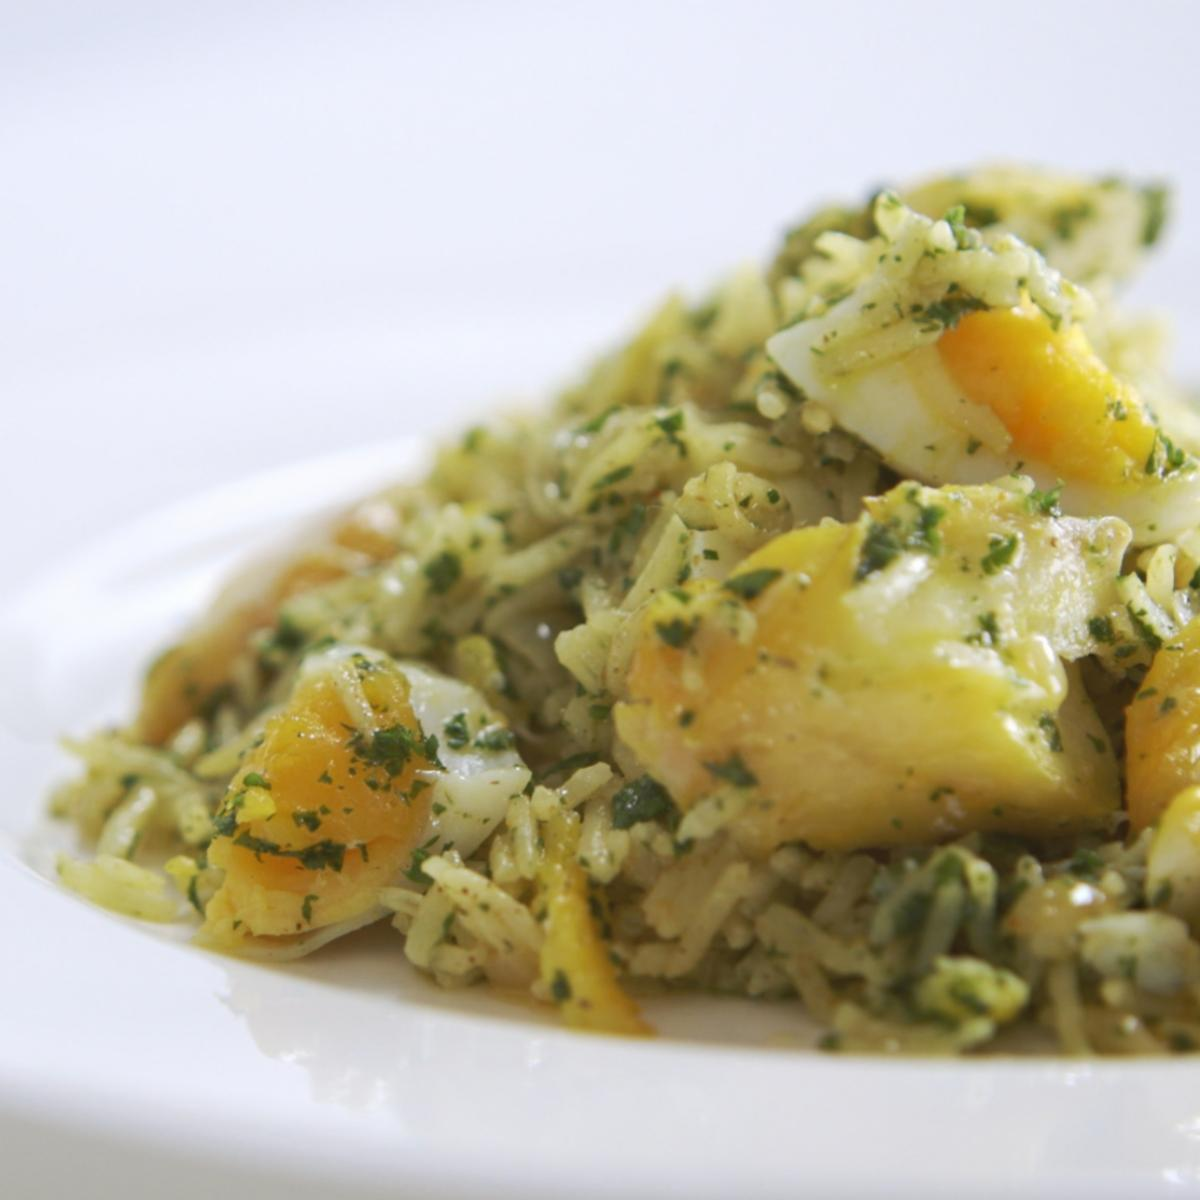 A picture of Delia's Kedgeree recipe